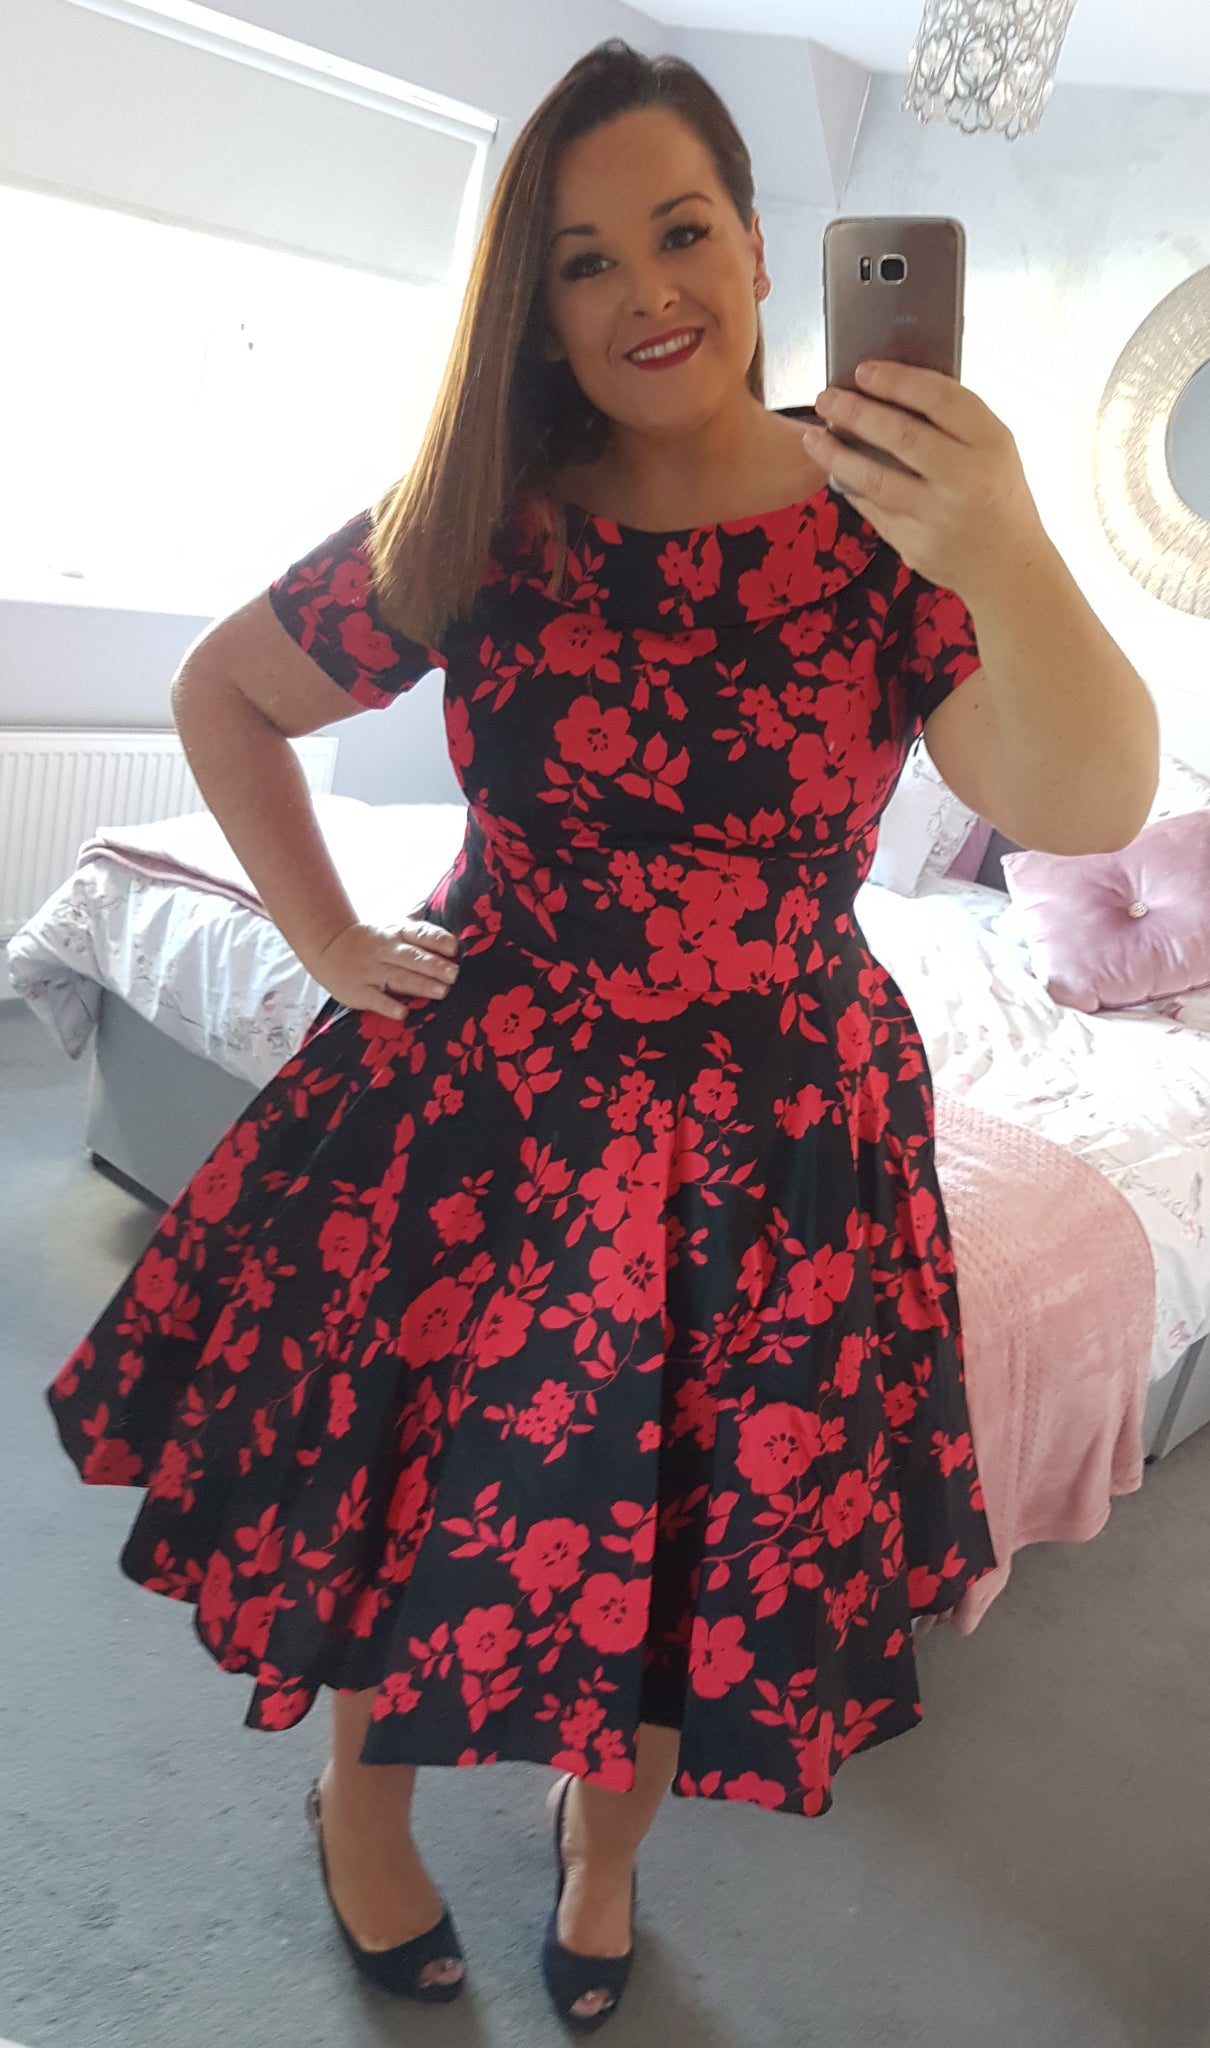 Darlene Retro Floral Swing Dress in Black/Red